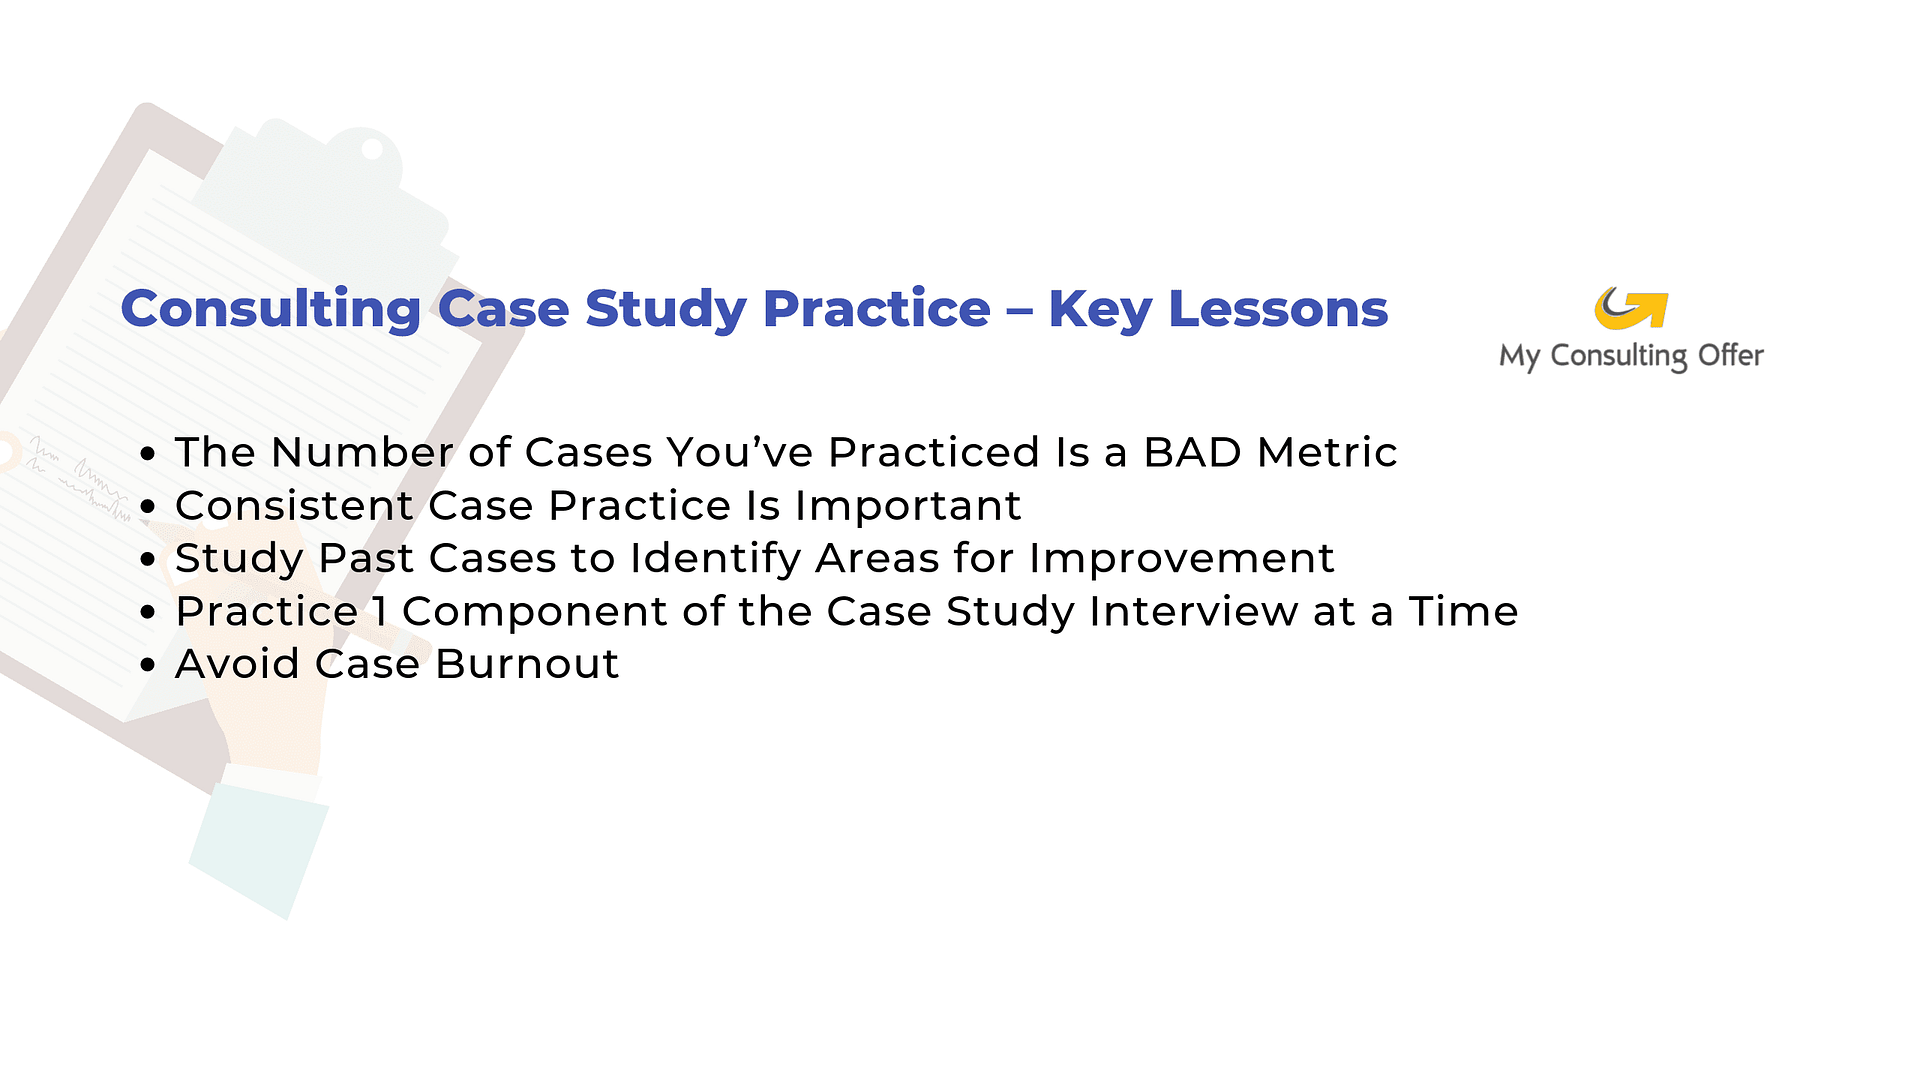 Consulting case practice - key lessons